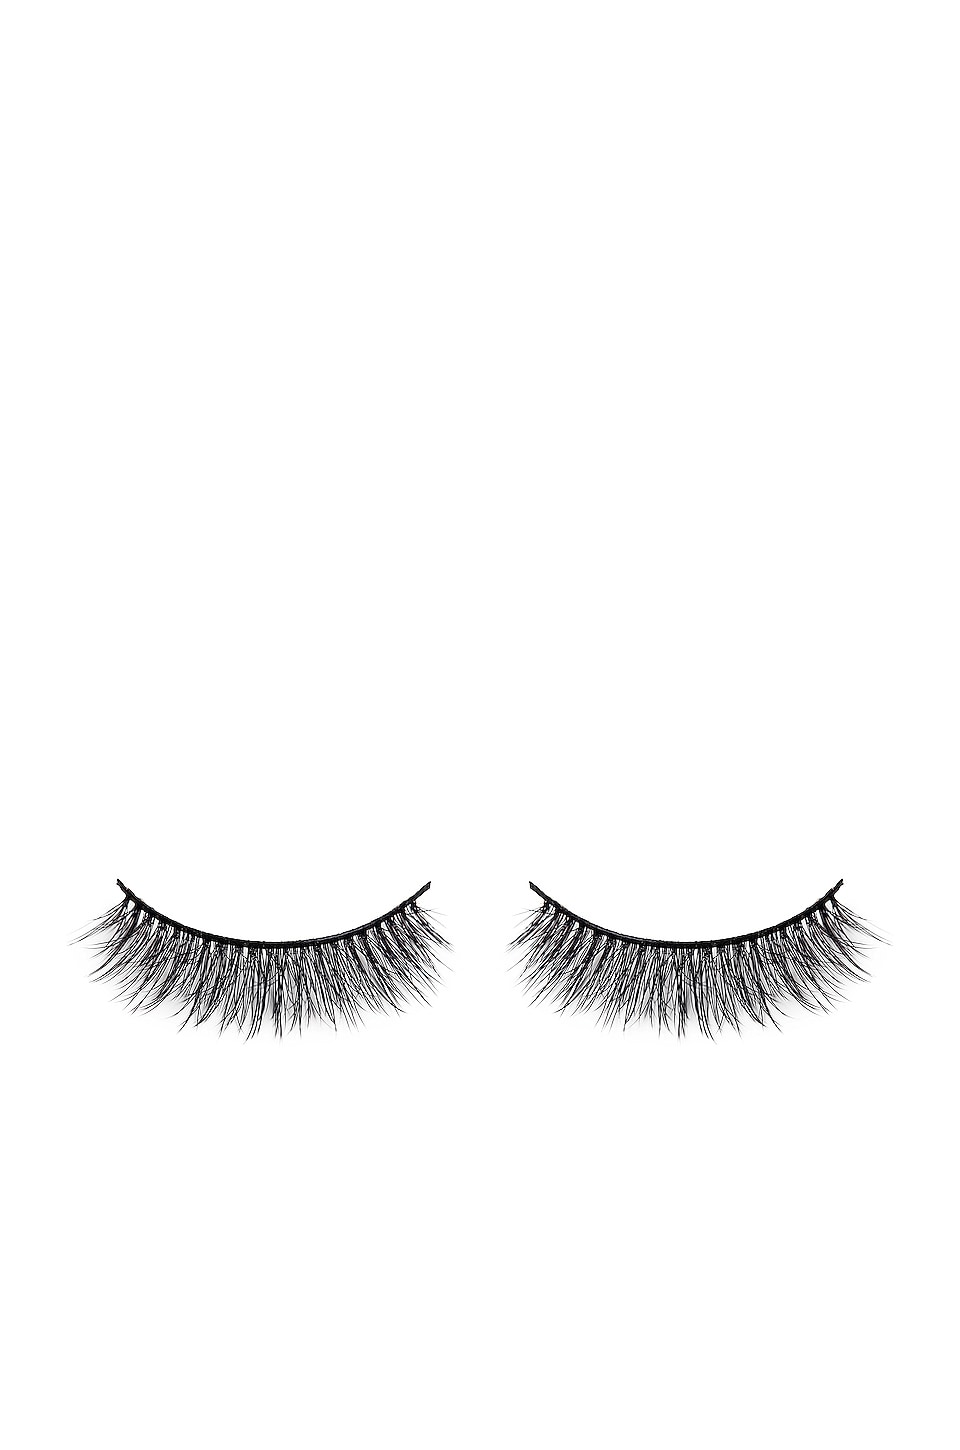 Battington Lashes Harlow 3D Silk Lashes in Black